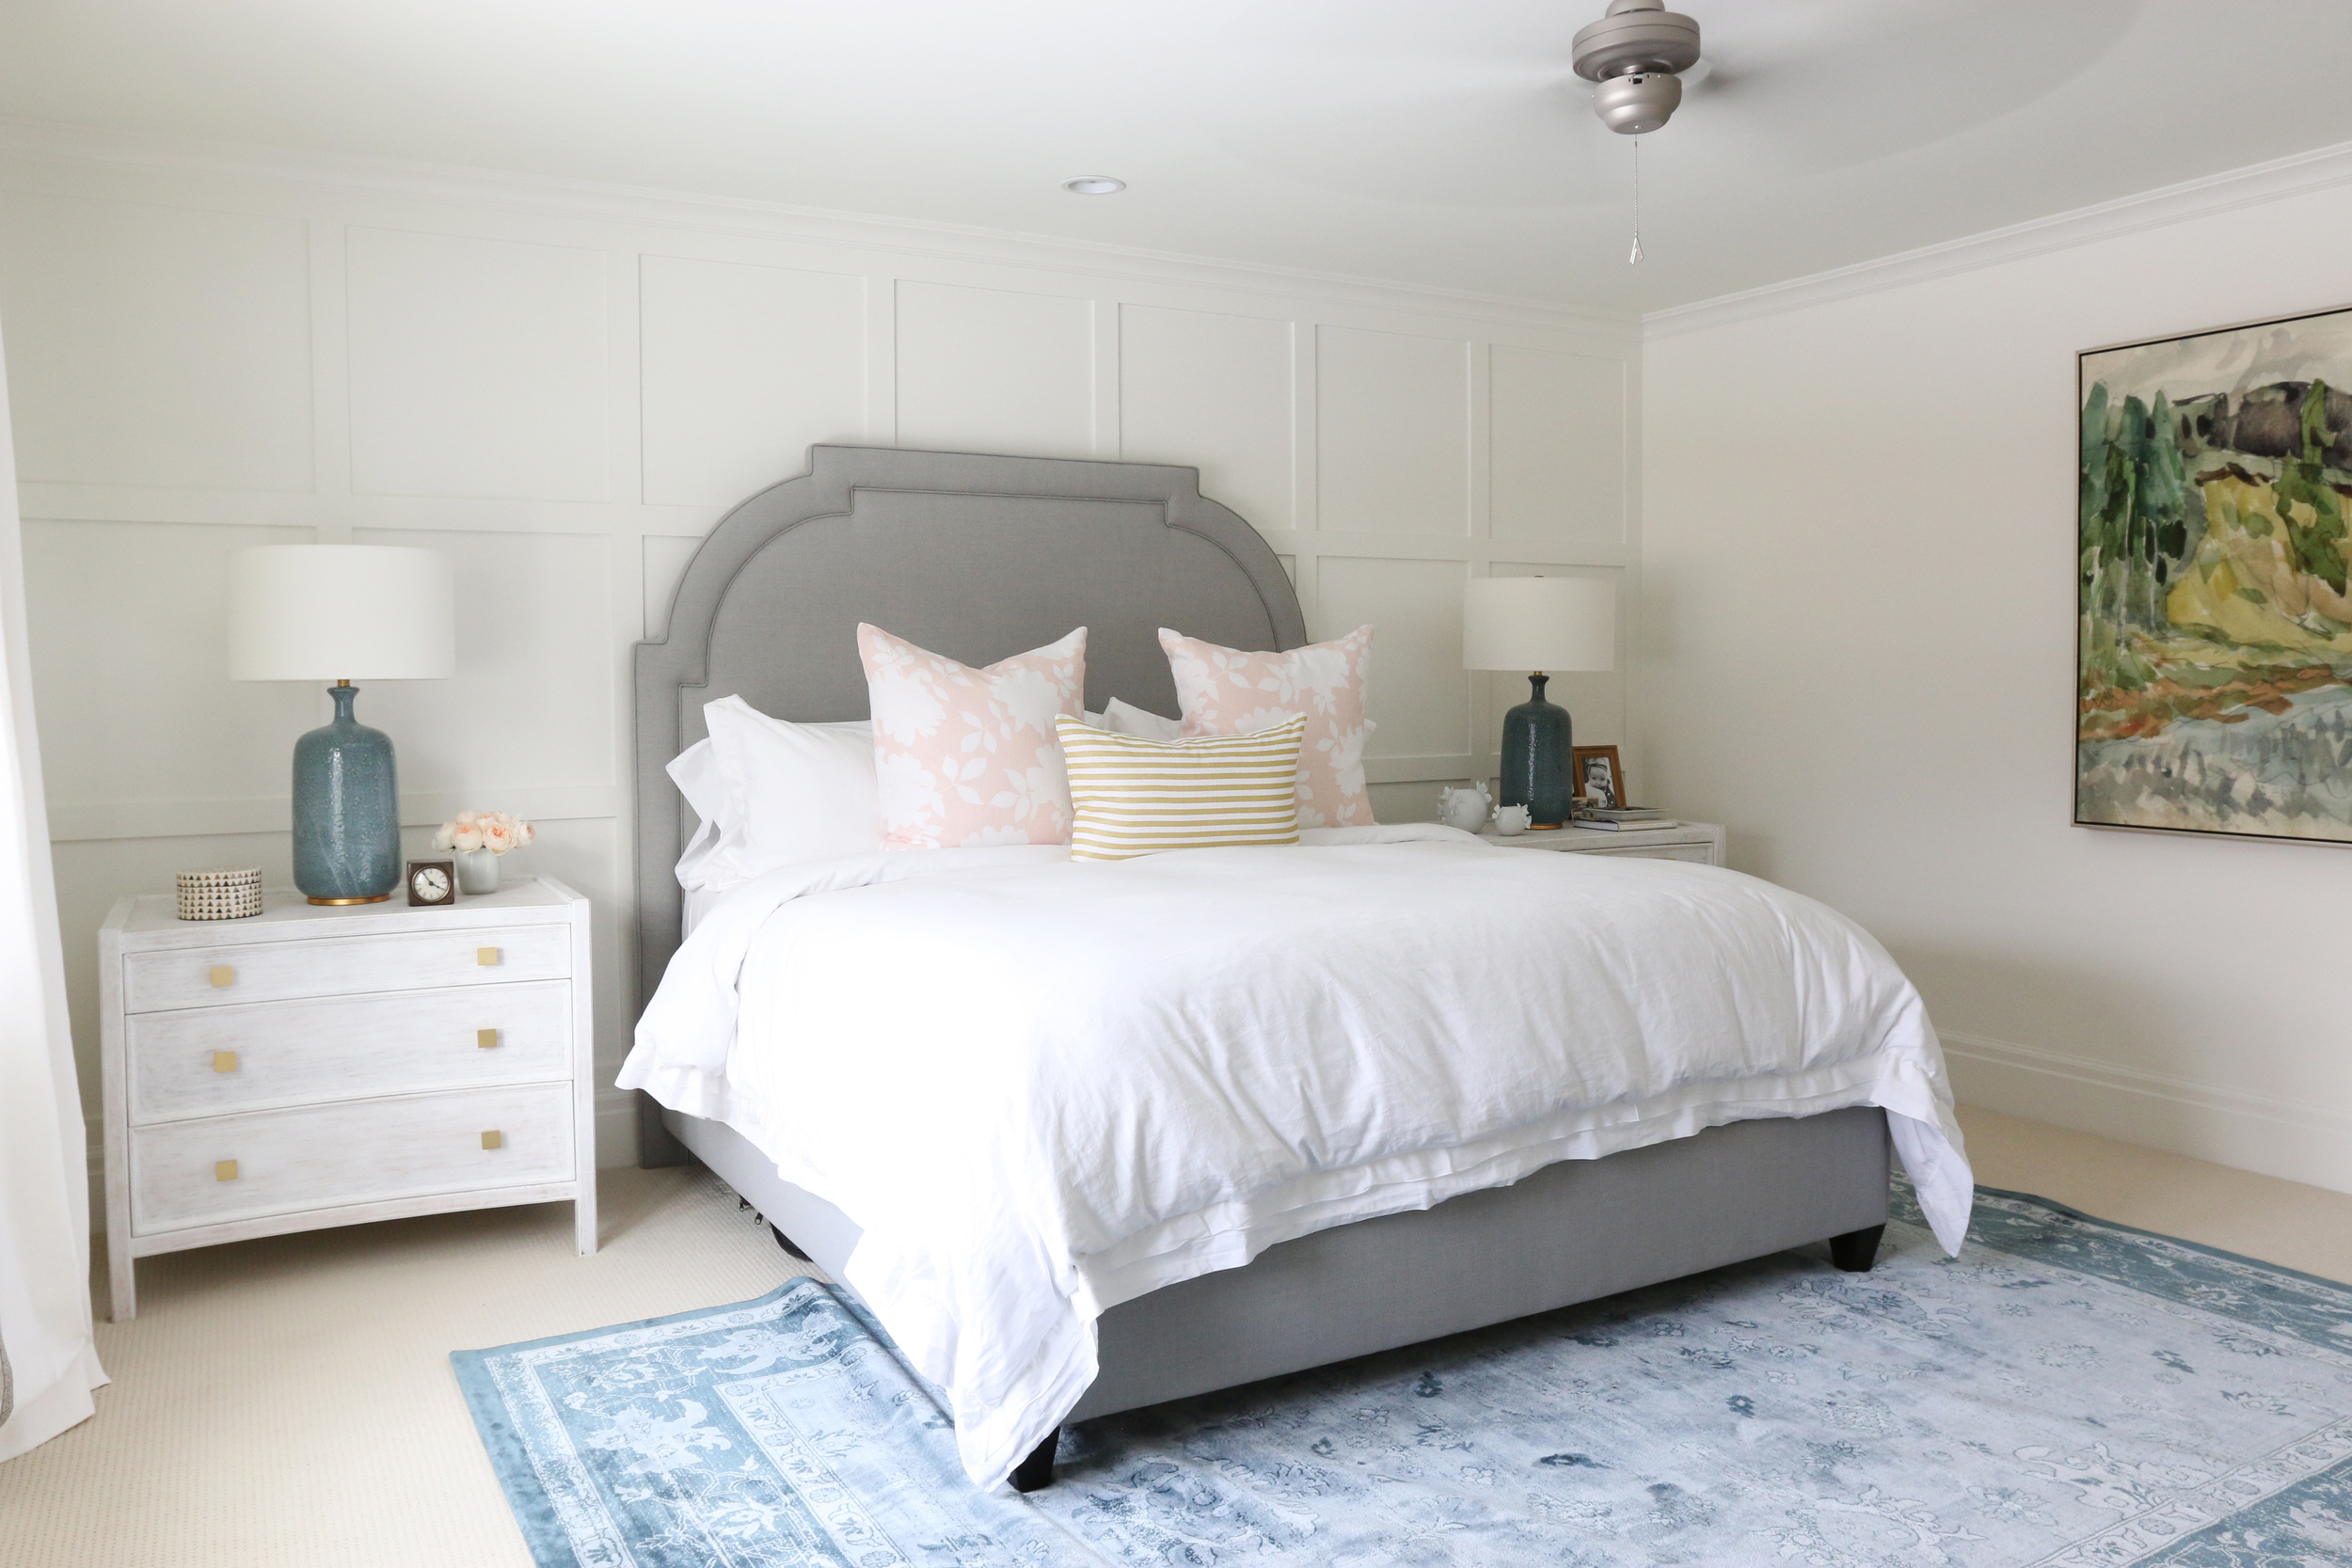 Rooms With Light Gray Walls